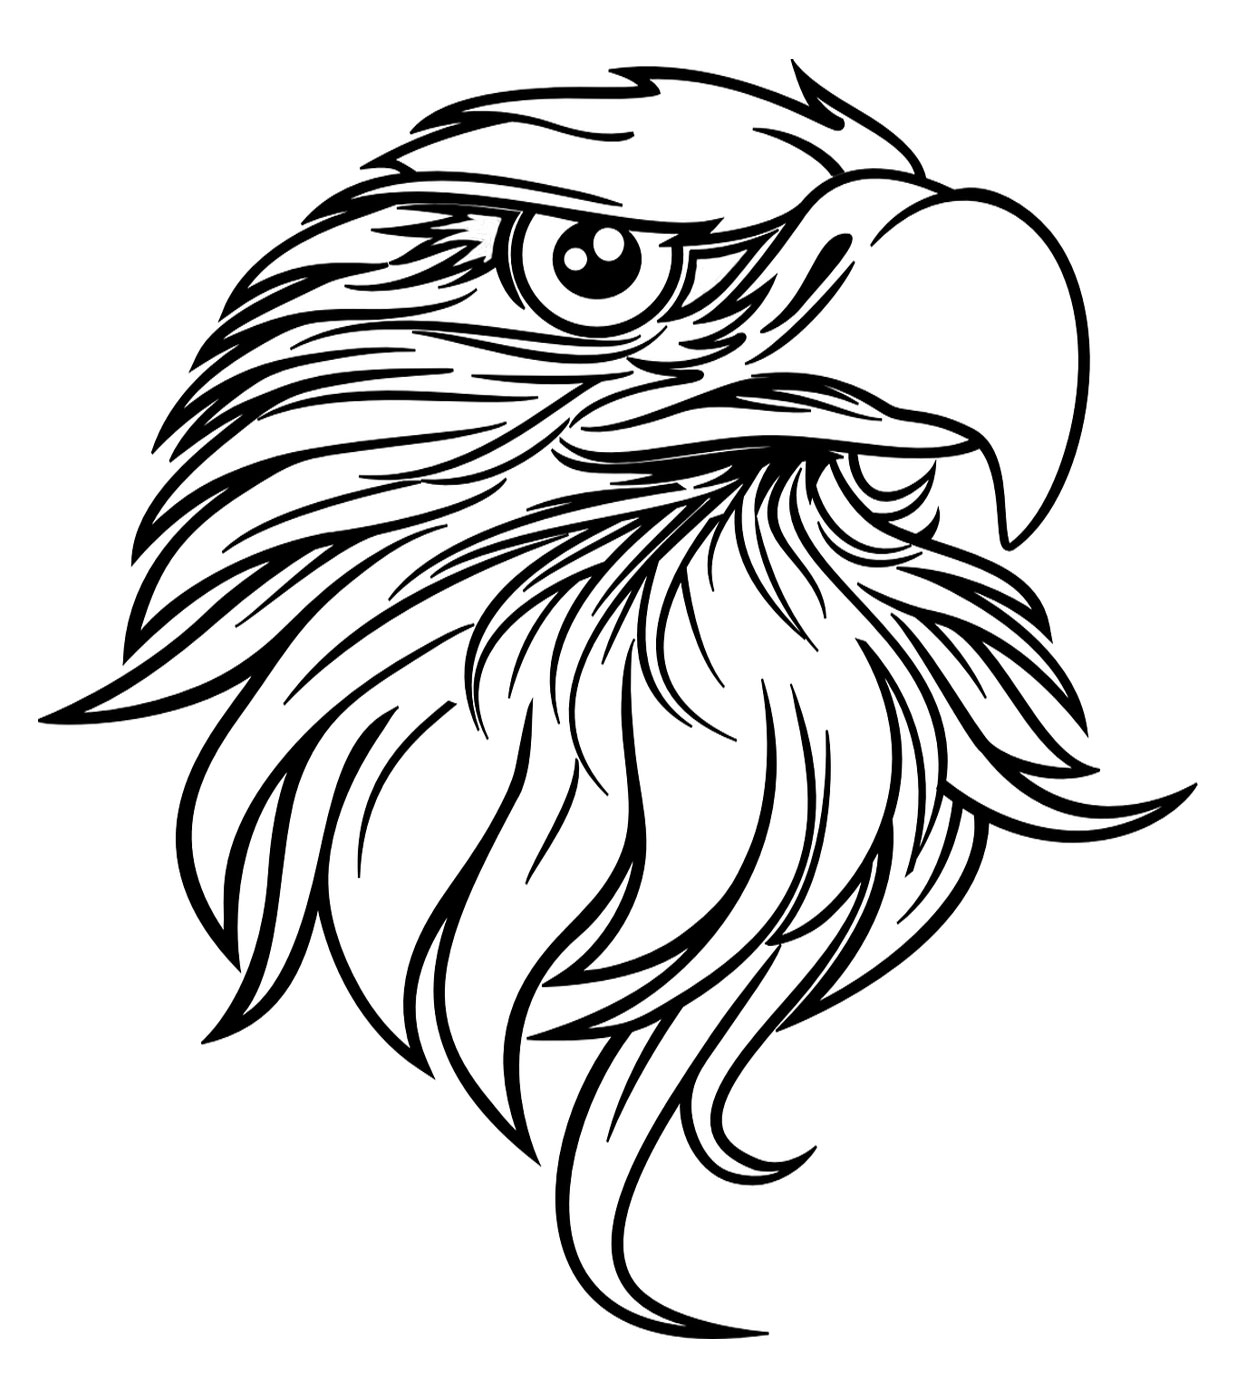 Free coloring page of an American bald eagle for American celebrations